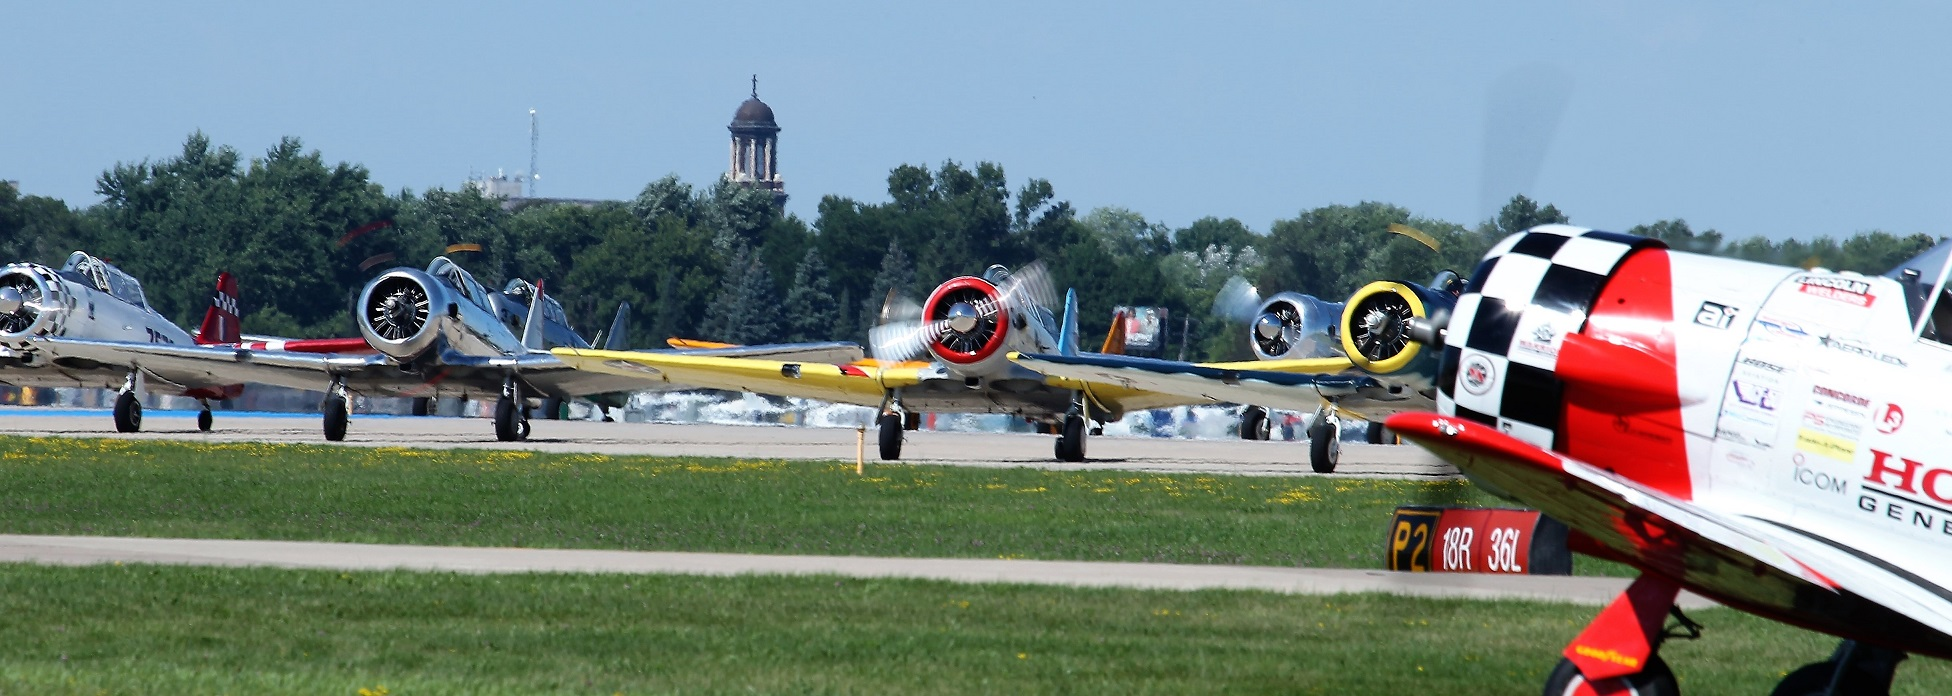 About 100 T6 Harvards in a mass display